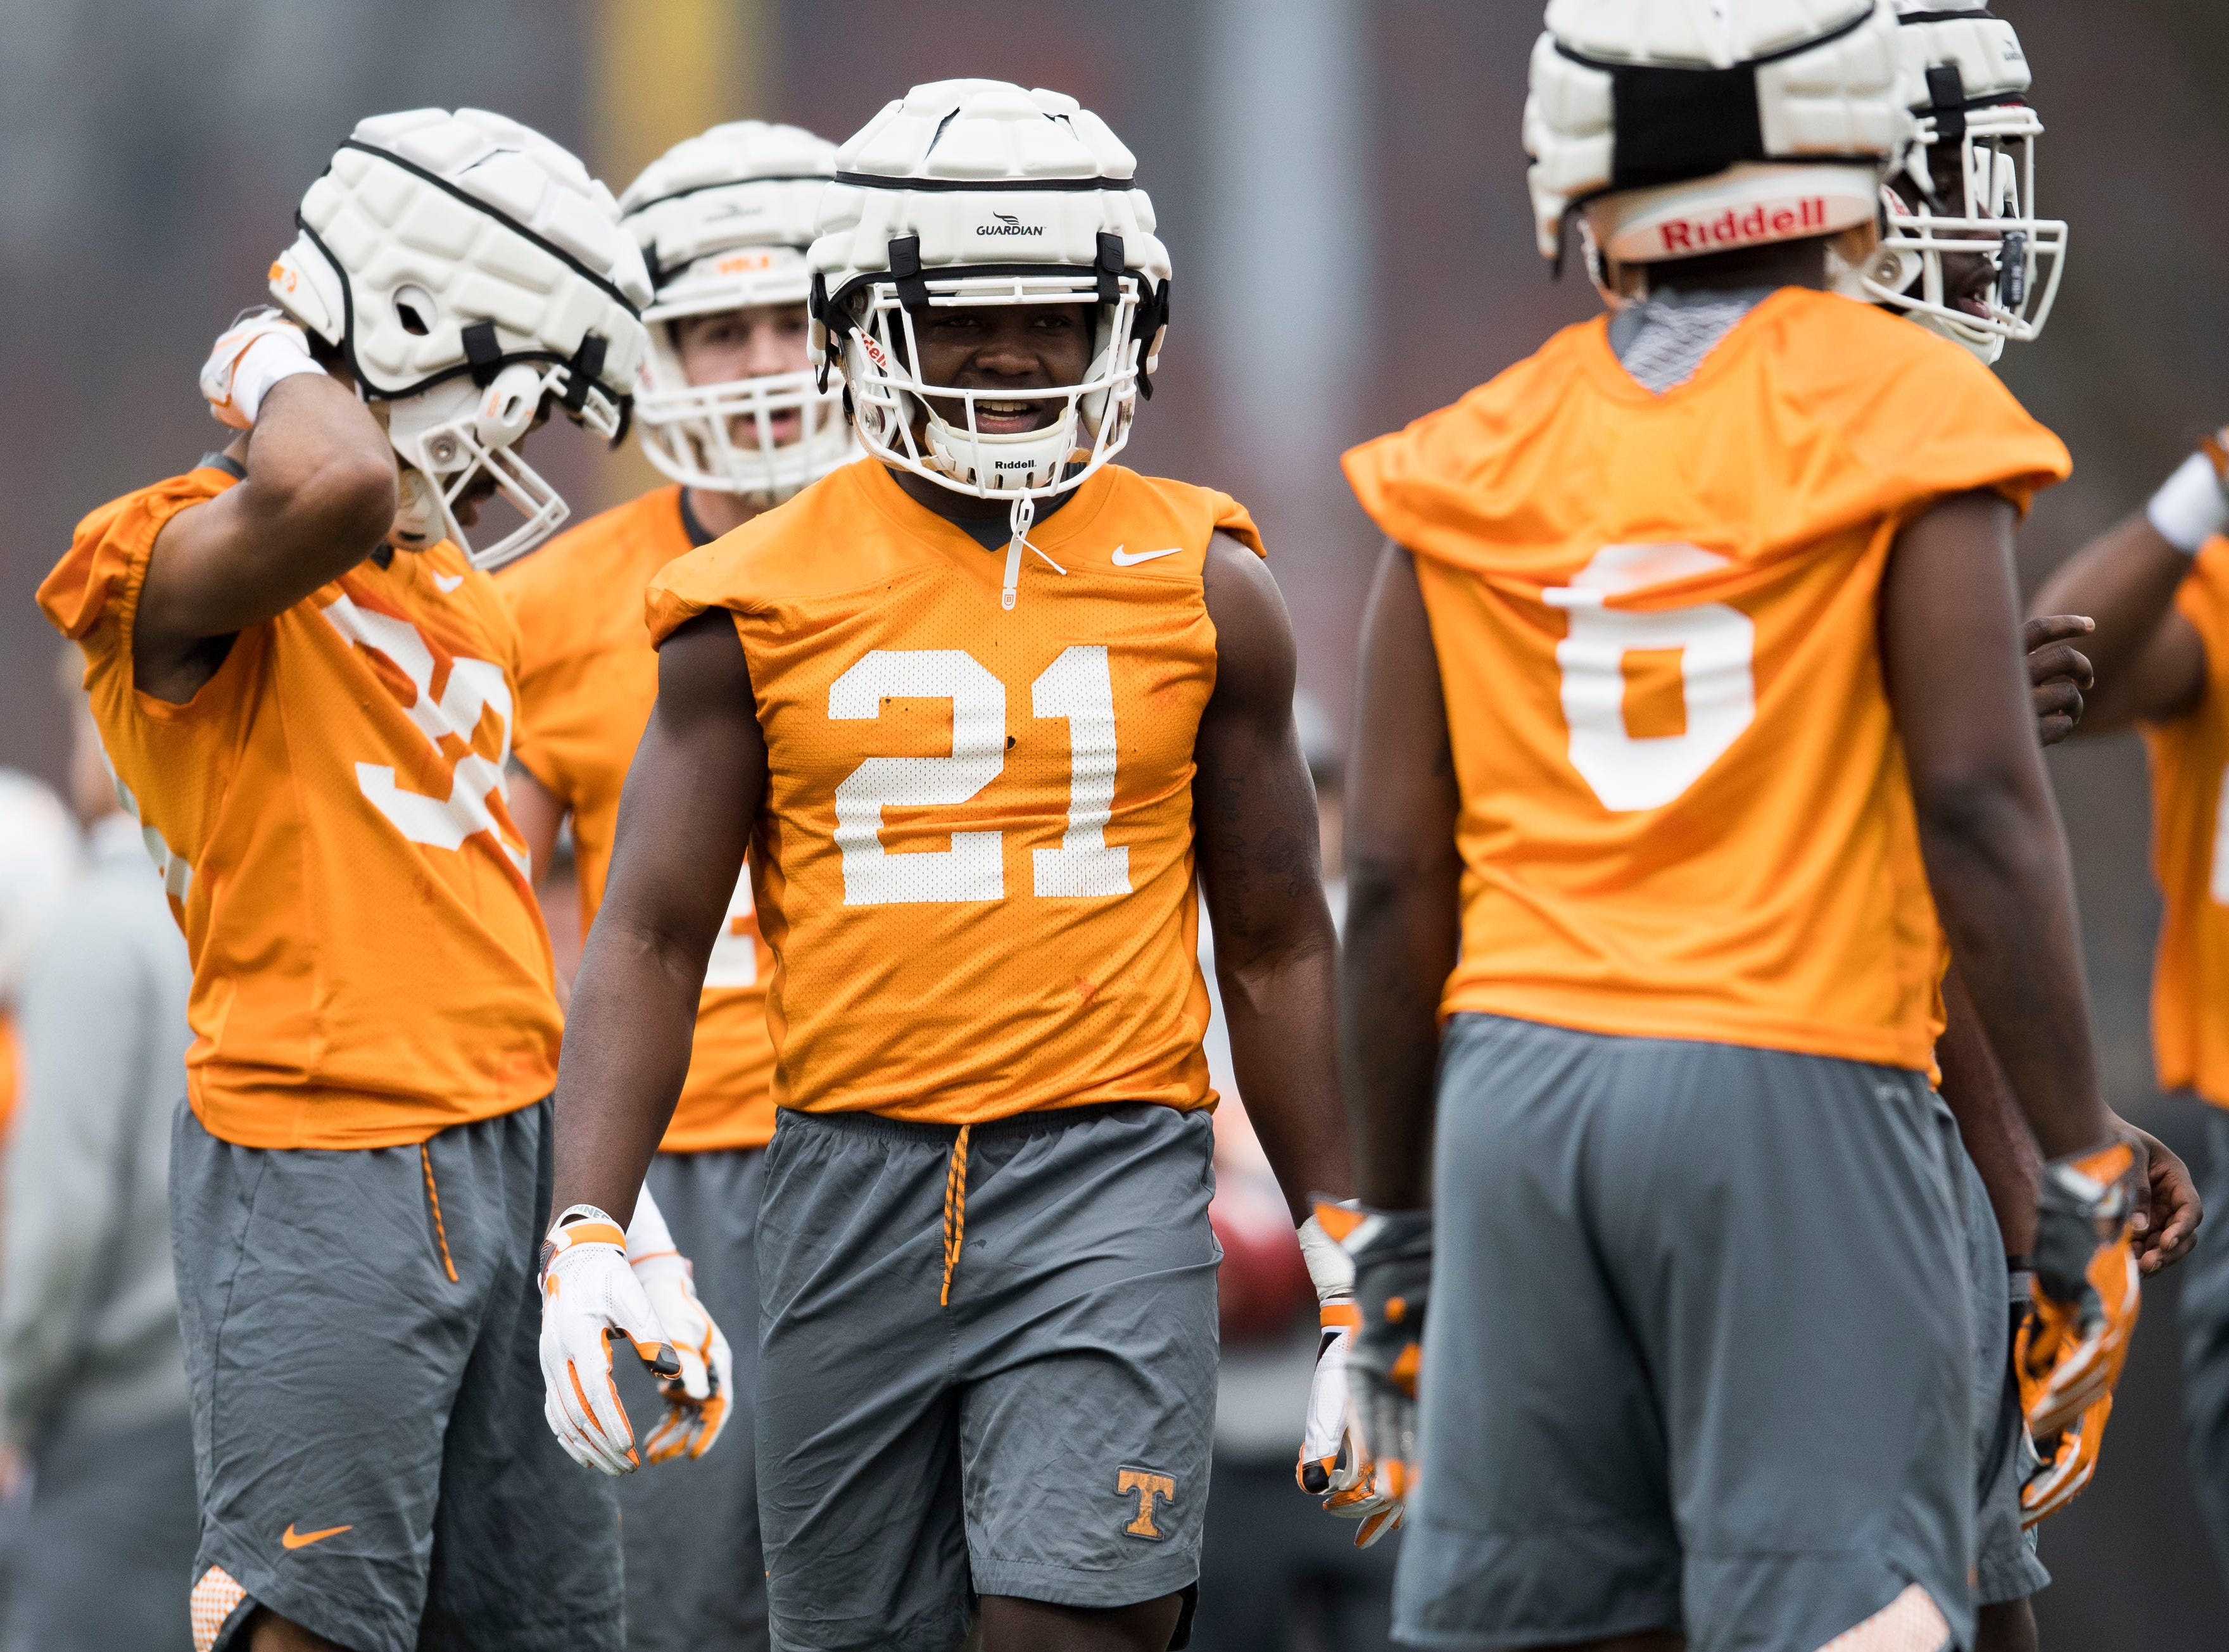 Tennessee players walk on the field during Tennessee football's first practice of the spring season at University of Tennessee Thursday, March 7, 2019.